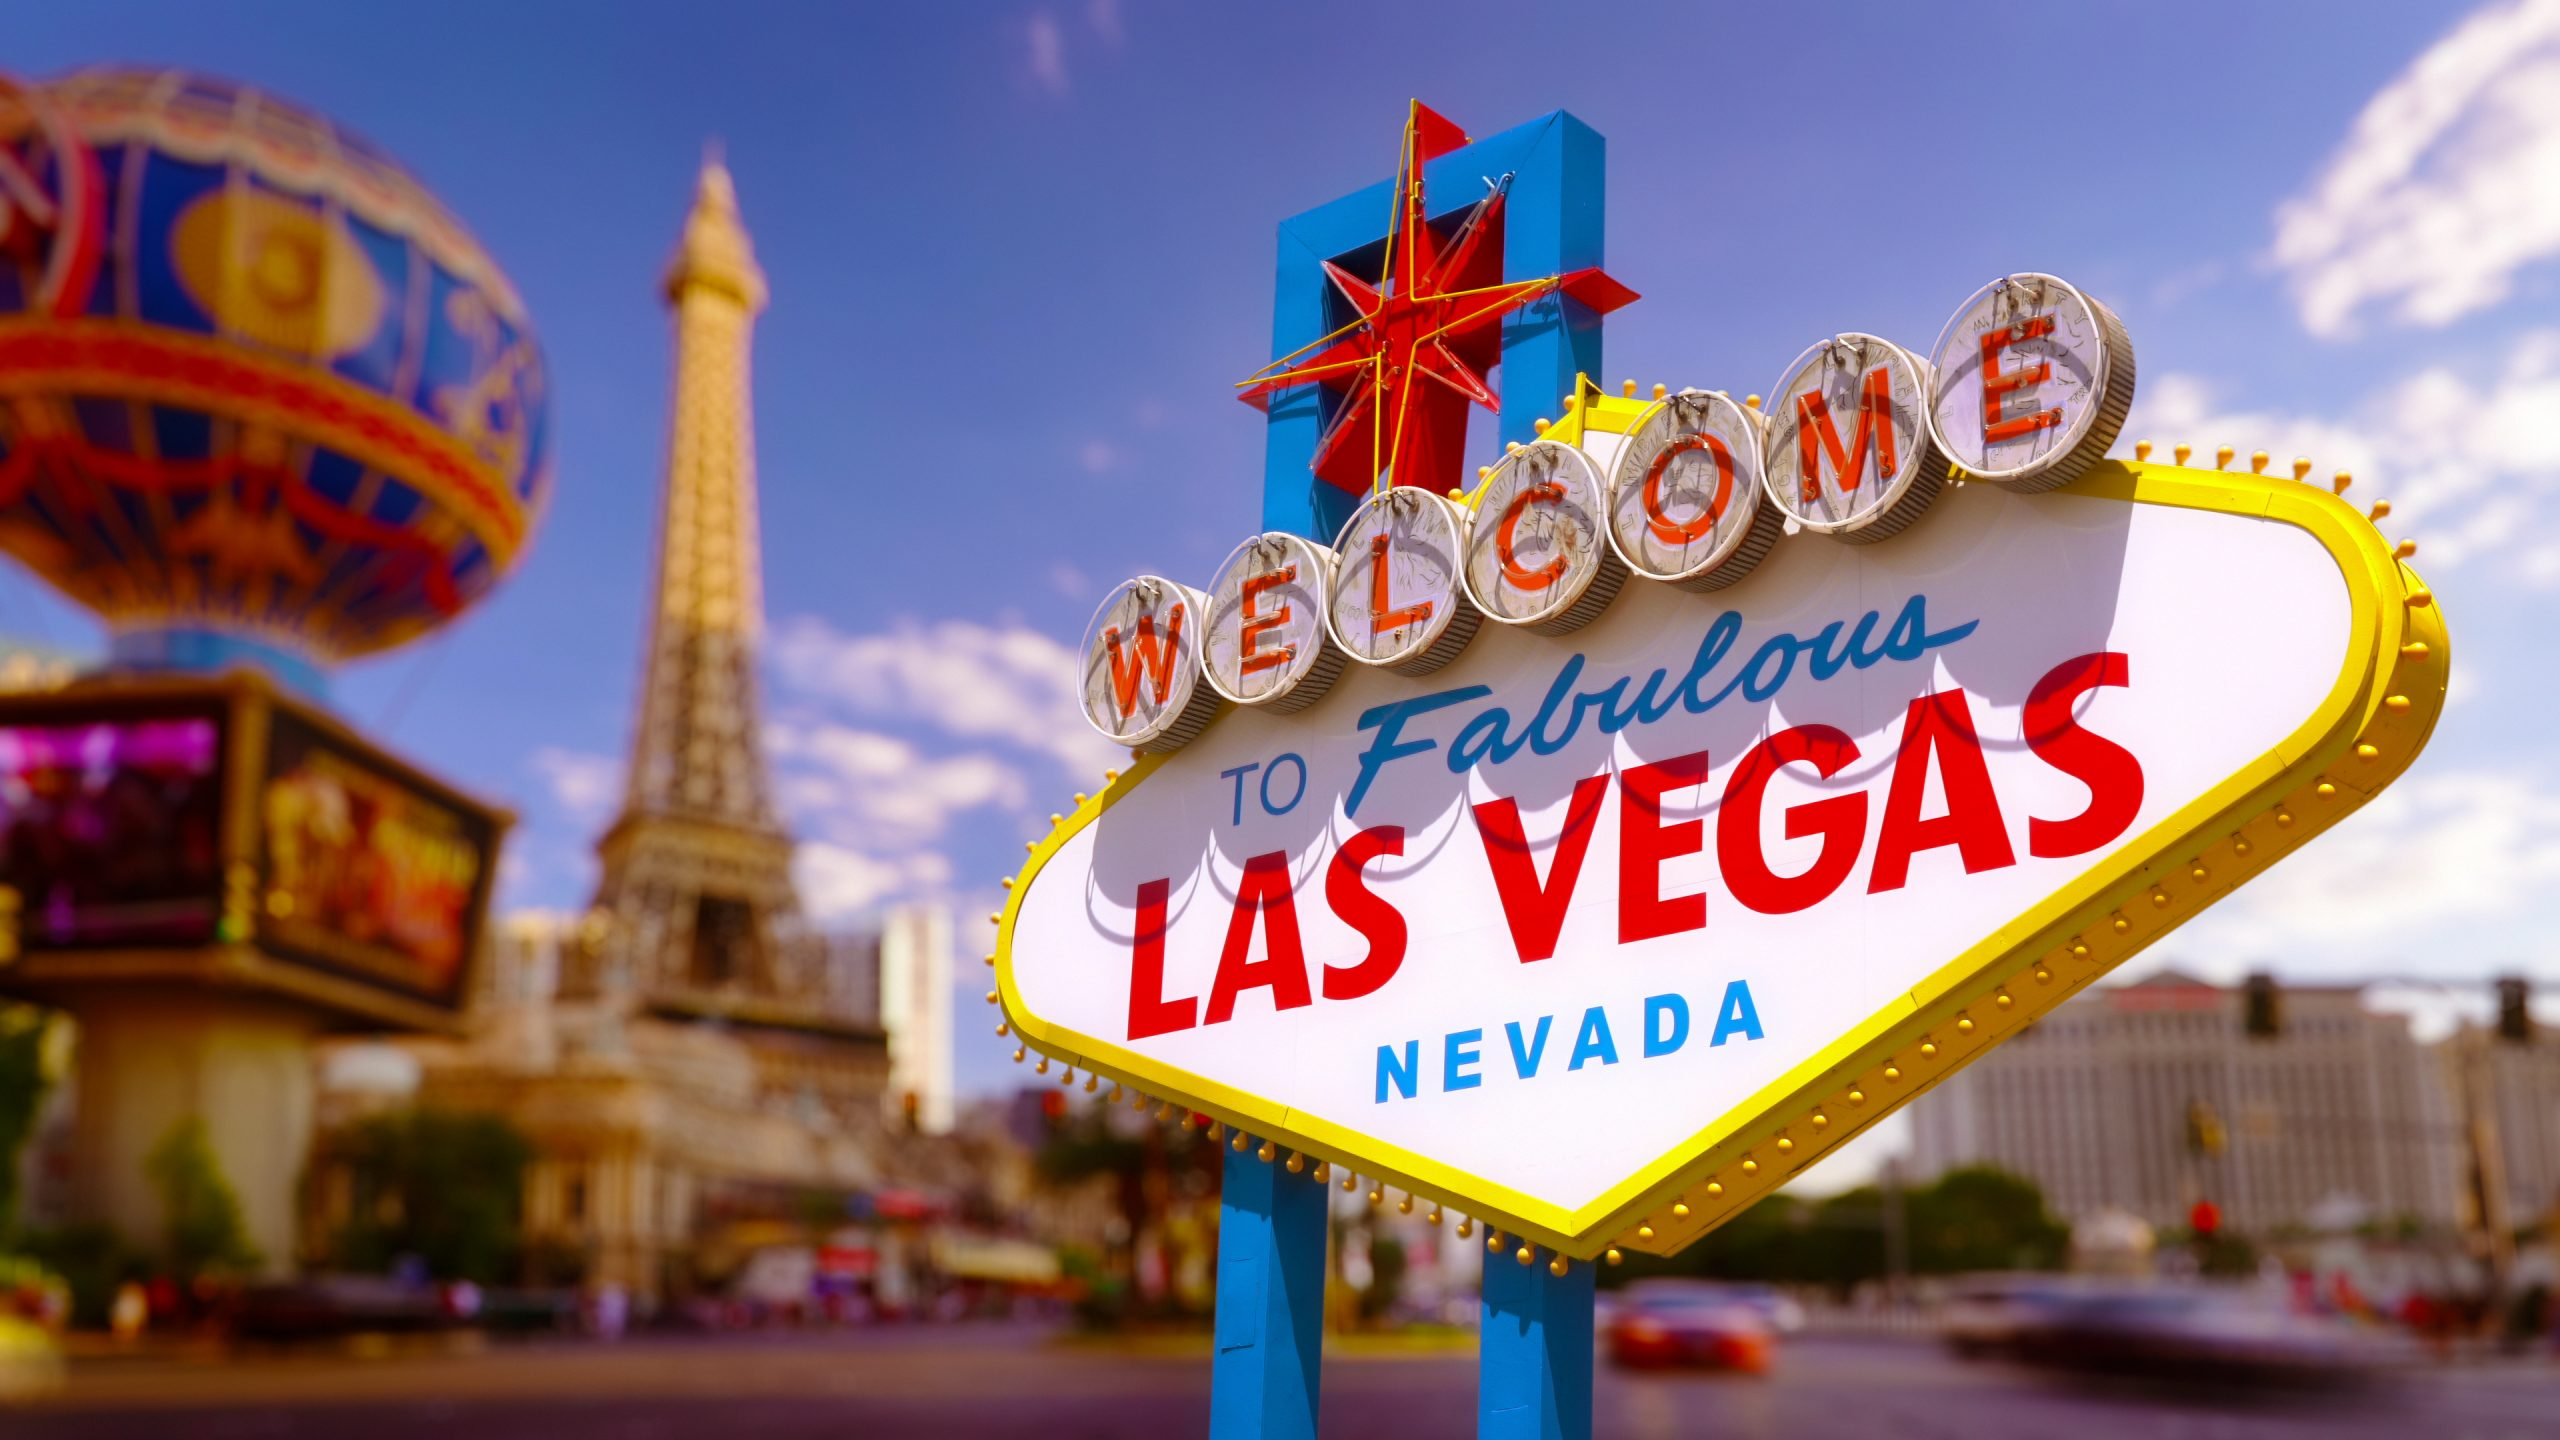 Las Vegas officially reopened today, but the crowds didn't wait